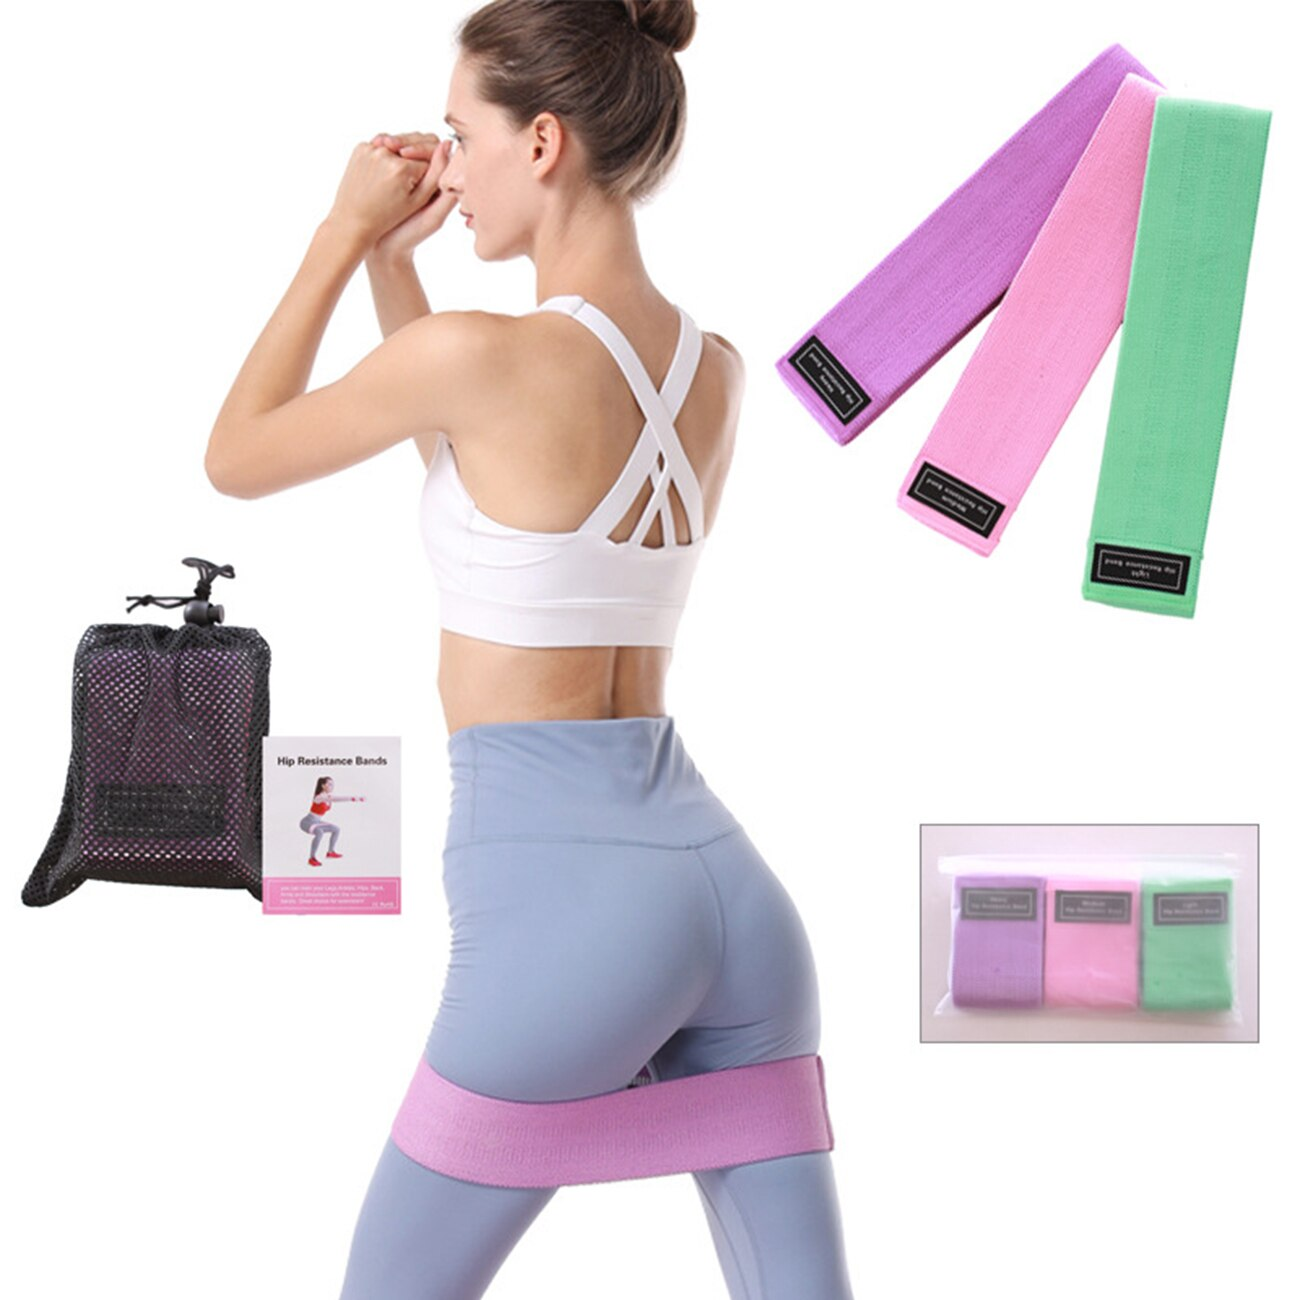 yoga elastic band resistance bands fitness for home gym equipment elasticas workout exercise rubber training band set Resistance Bands Set Workout Rubber Elastic Sport Booty Band Fitness Equipment For Yoga Gym Training Fabric Bandas Elasticas